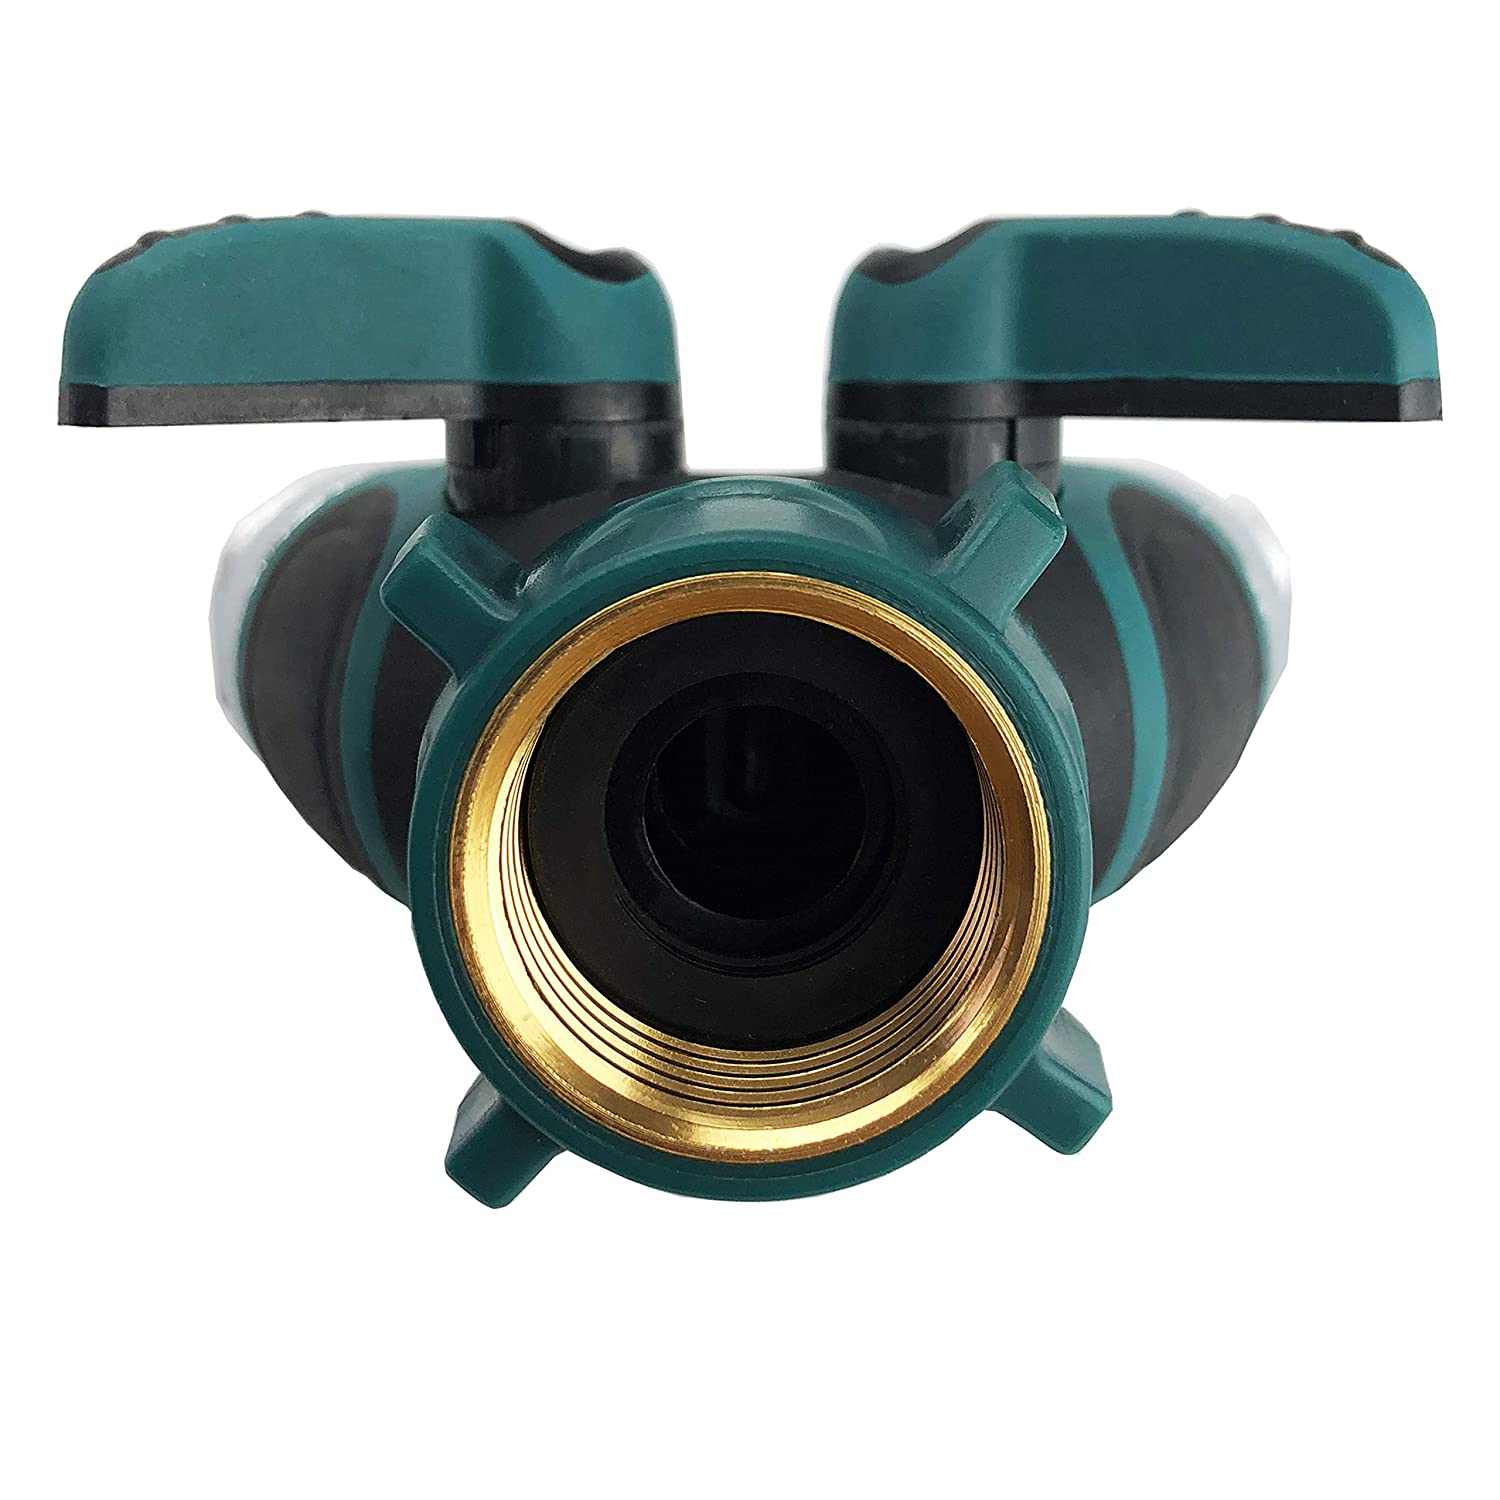 Hose Splitter 2 Way with Comfortable Rubberized Grip /… Green Body Made of Copper Pexio Professional Garden Hose Connector